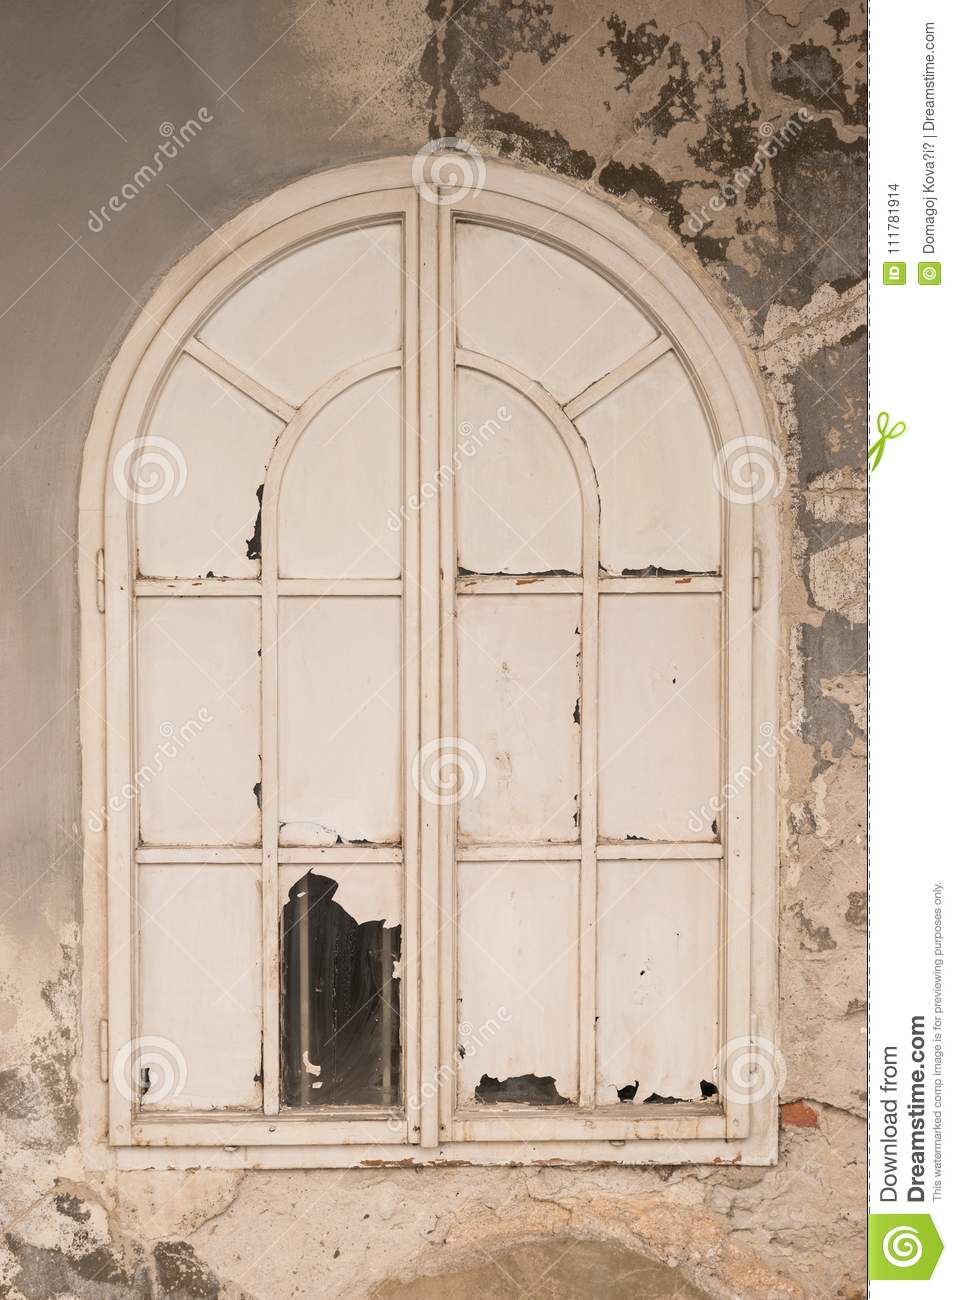 Old and closed white window on ruined wall.